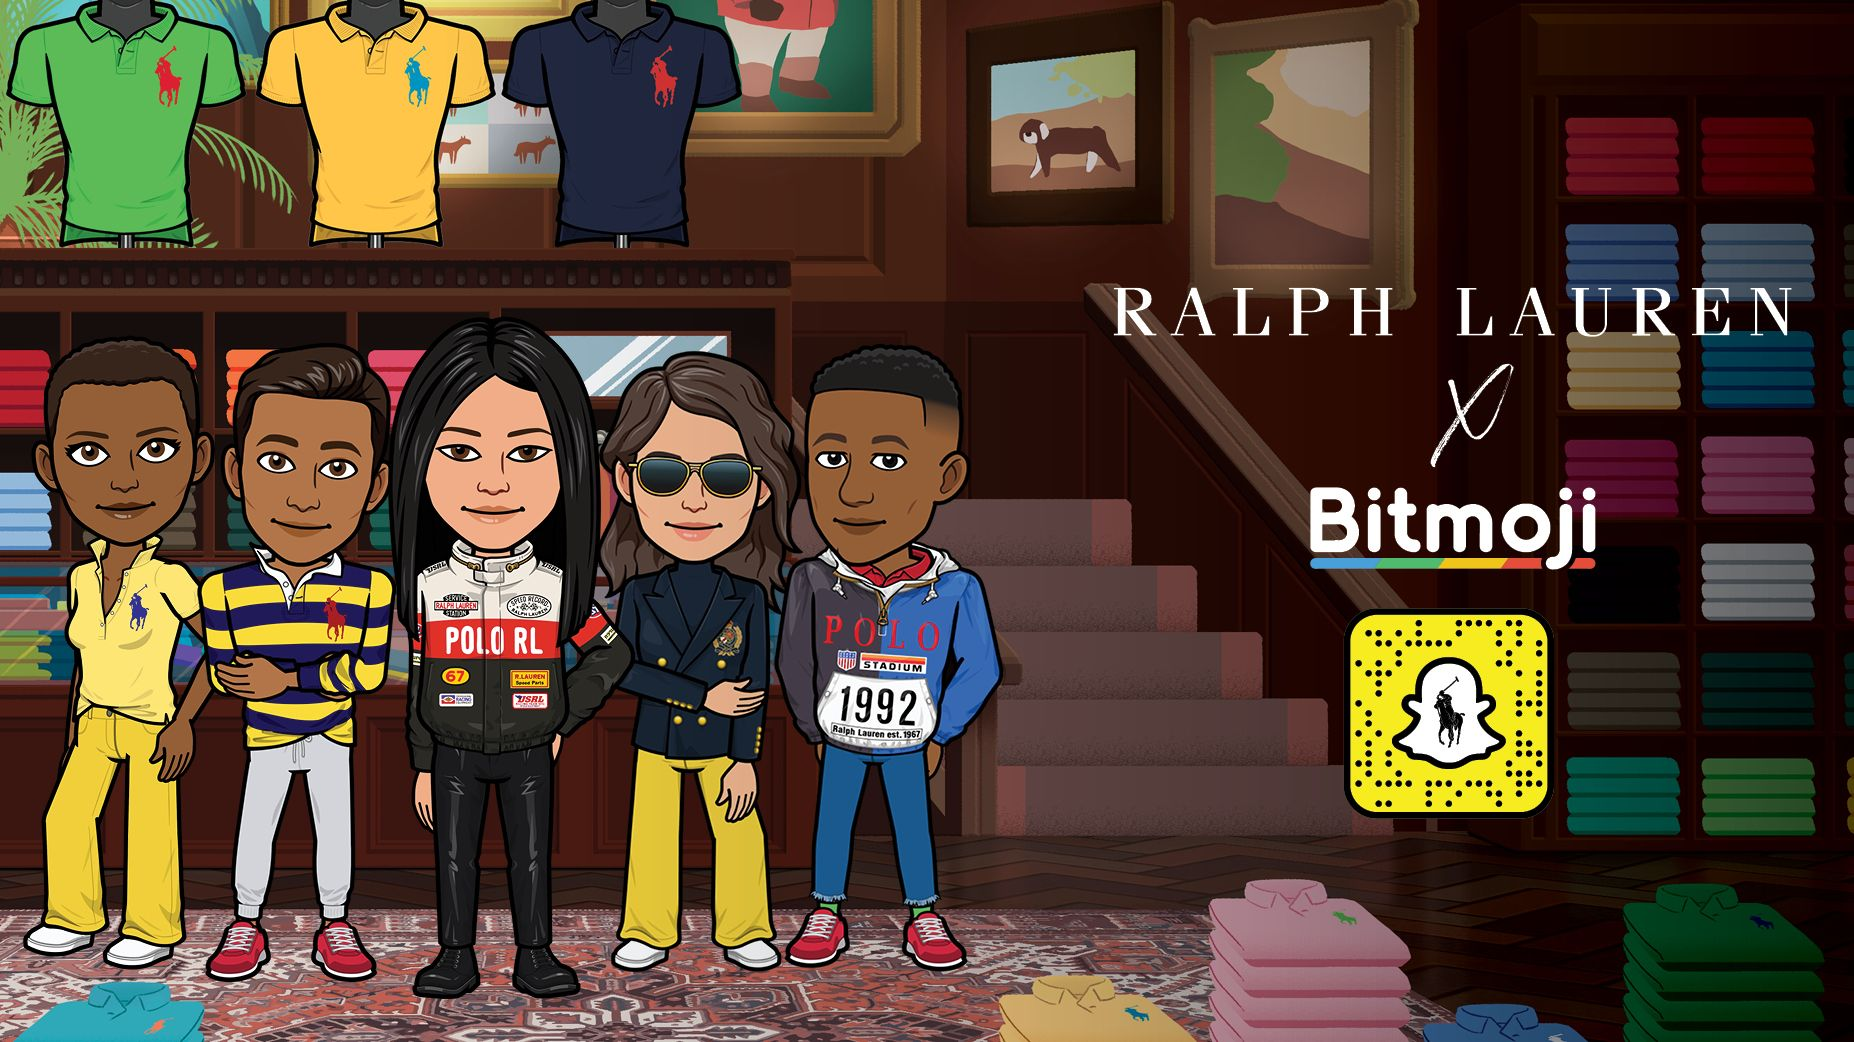 Ralph Lauren launches wardrobe for Bitmoji